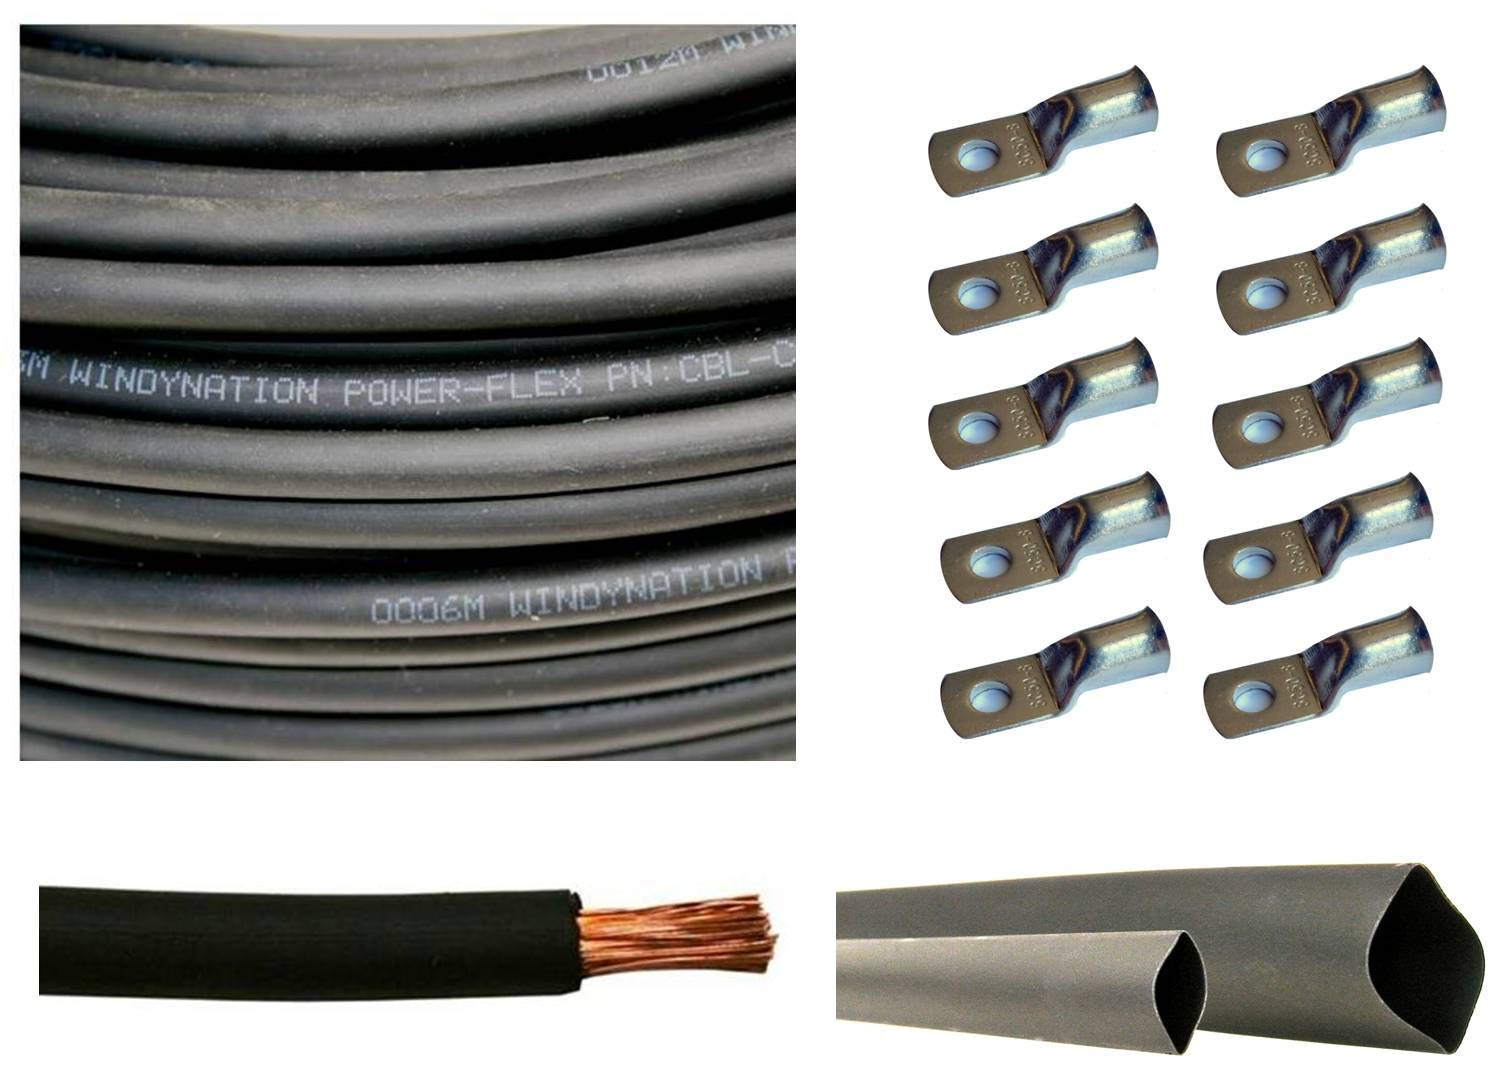 3 Feet Heat Shrink Tubing WNI 2//0 AWG 2//0 Gauge 20 Feet Black Battery Welding Pure Copper Ultra Flexible Cable 5pcs of 5//16 /& 5pcs 3//8 Copper Cable Lug Terminal Connectors